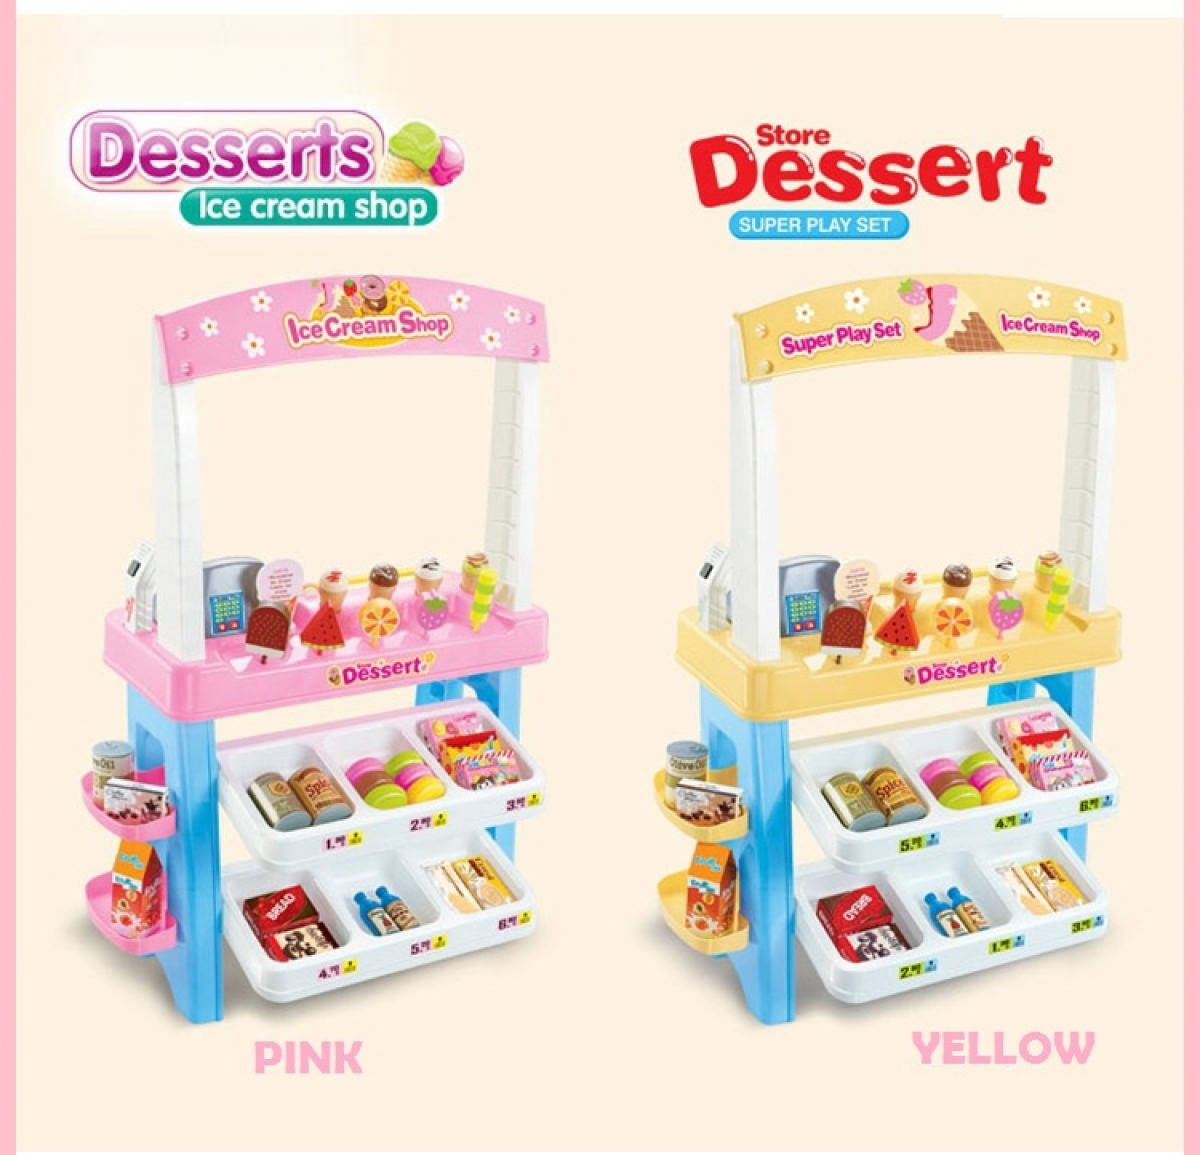 Pink Tree Wall Sticker Dessert Ice Cream Shop Playset Toysdirect Online Kids